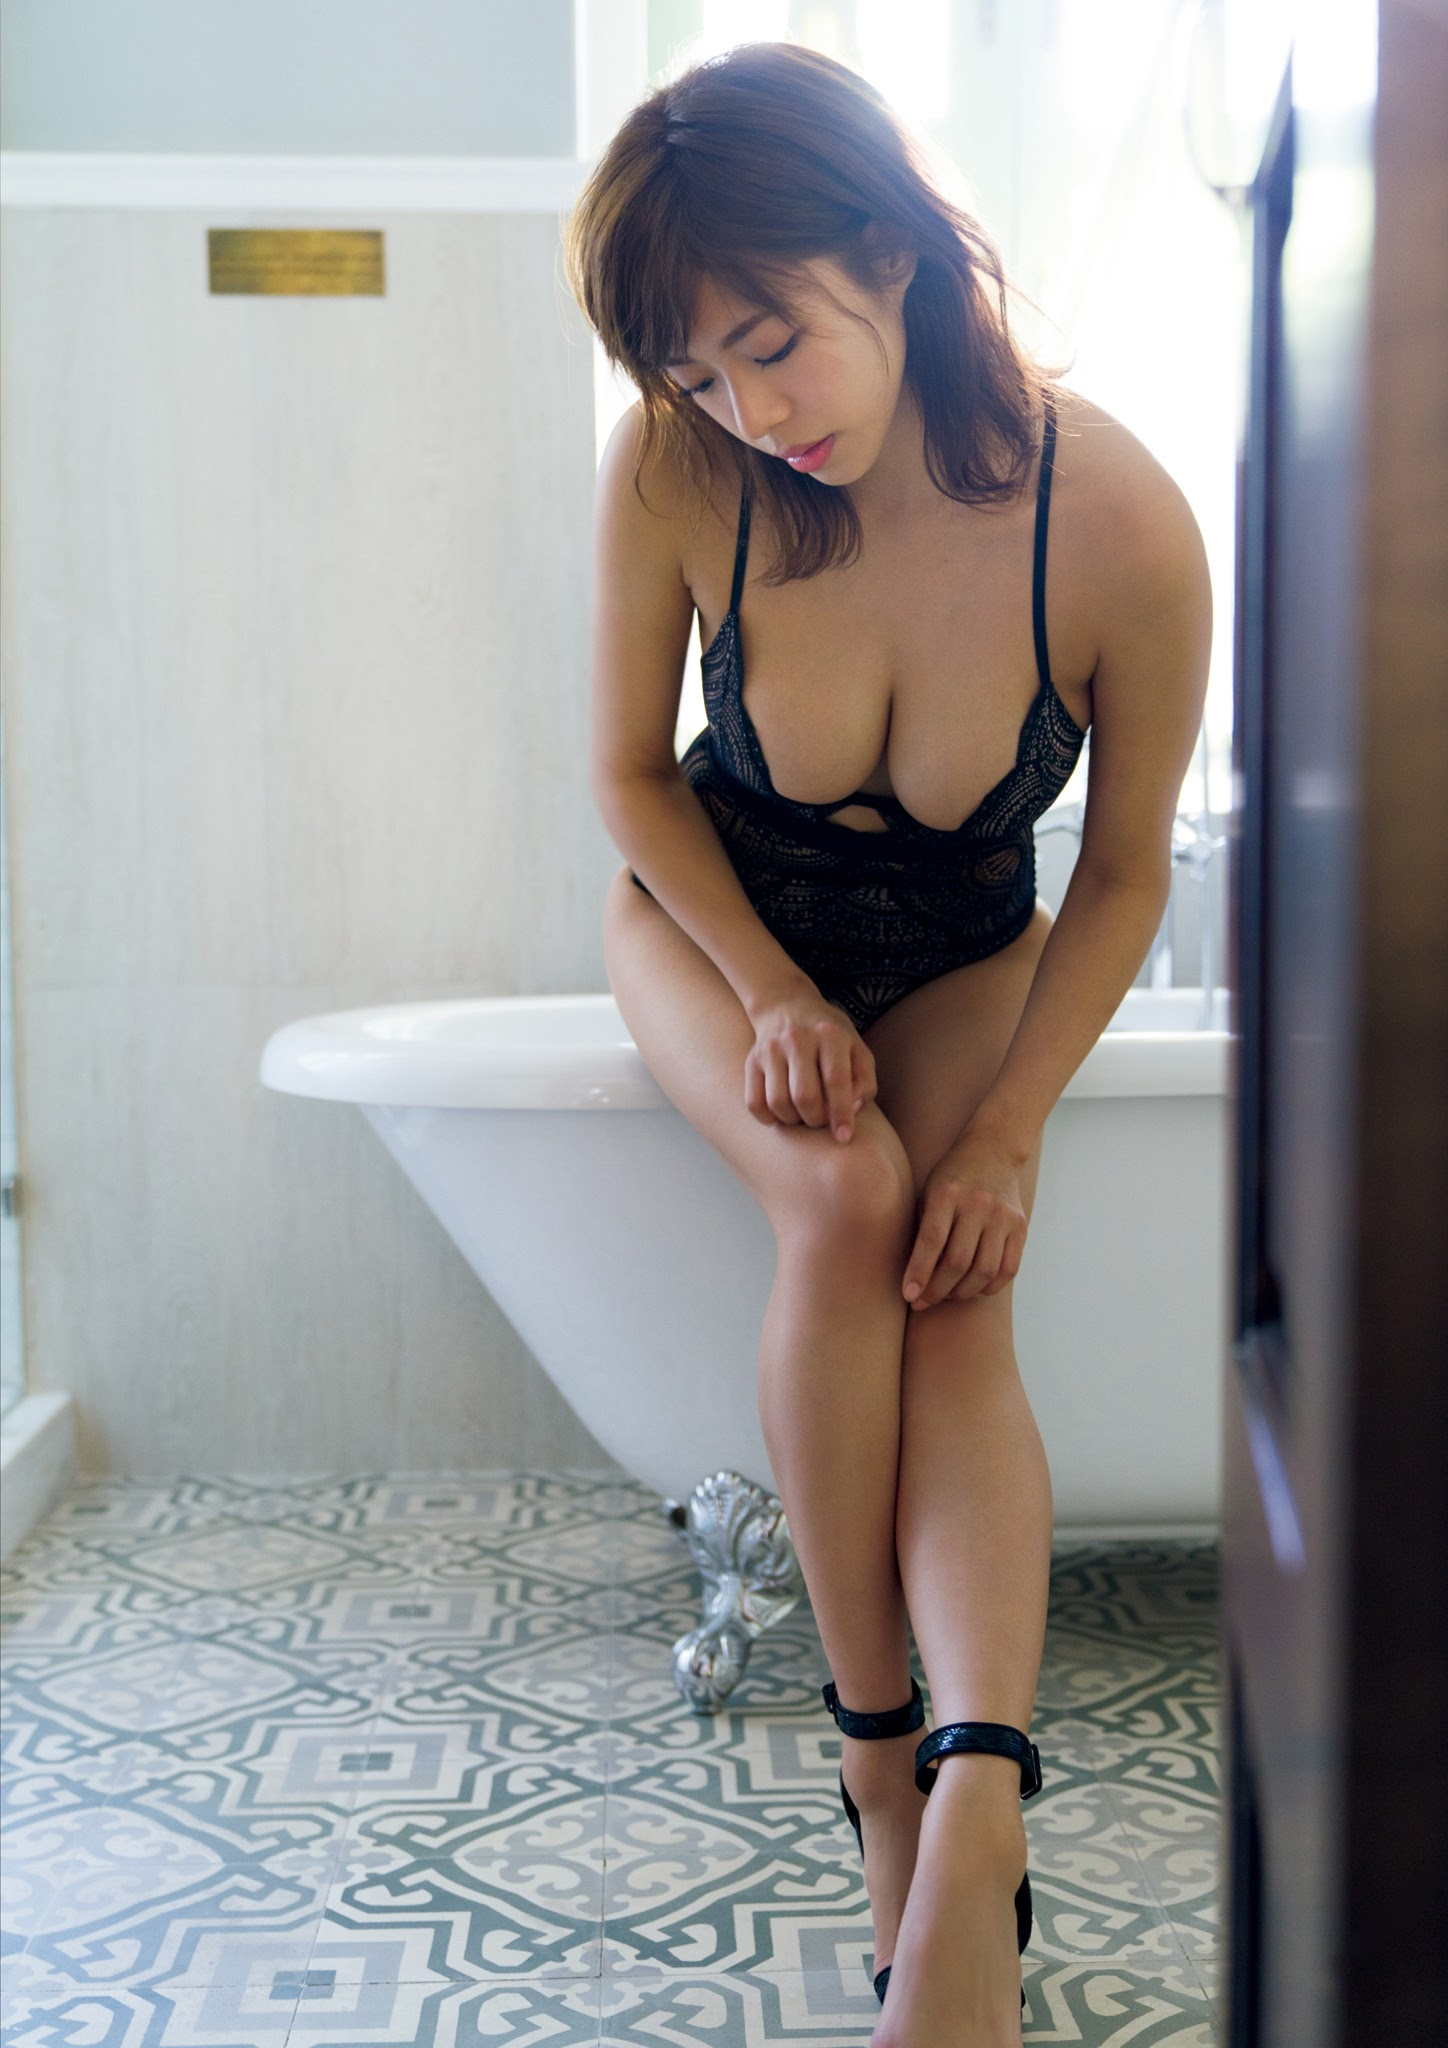 Super body of H cup Minami Wachi 2020 that exposes body and mind in tropical Thailand066